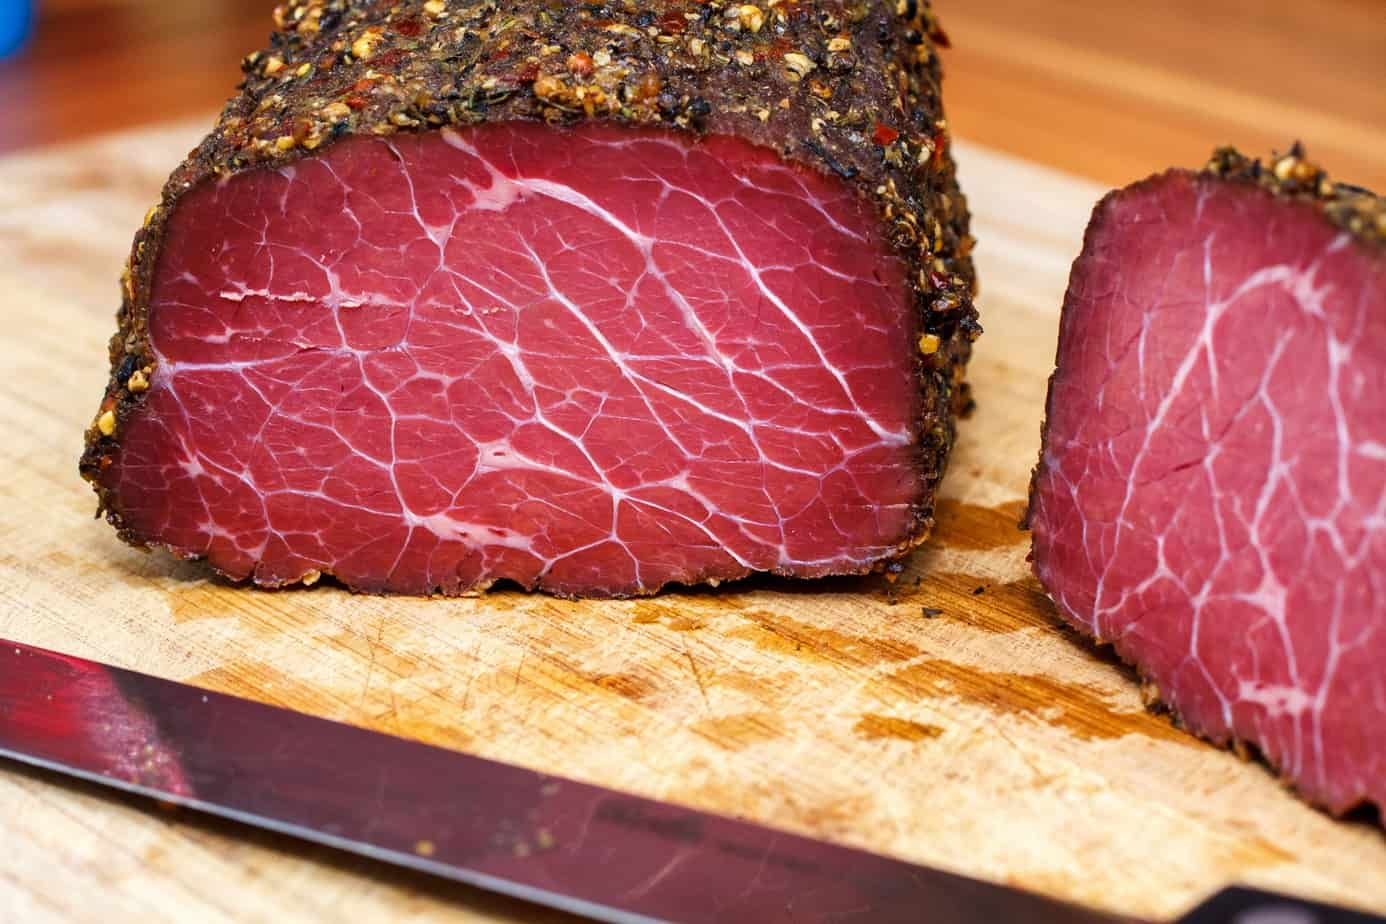 How to Make Pastrami in a Smoker in 8 Easy Steps